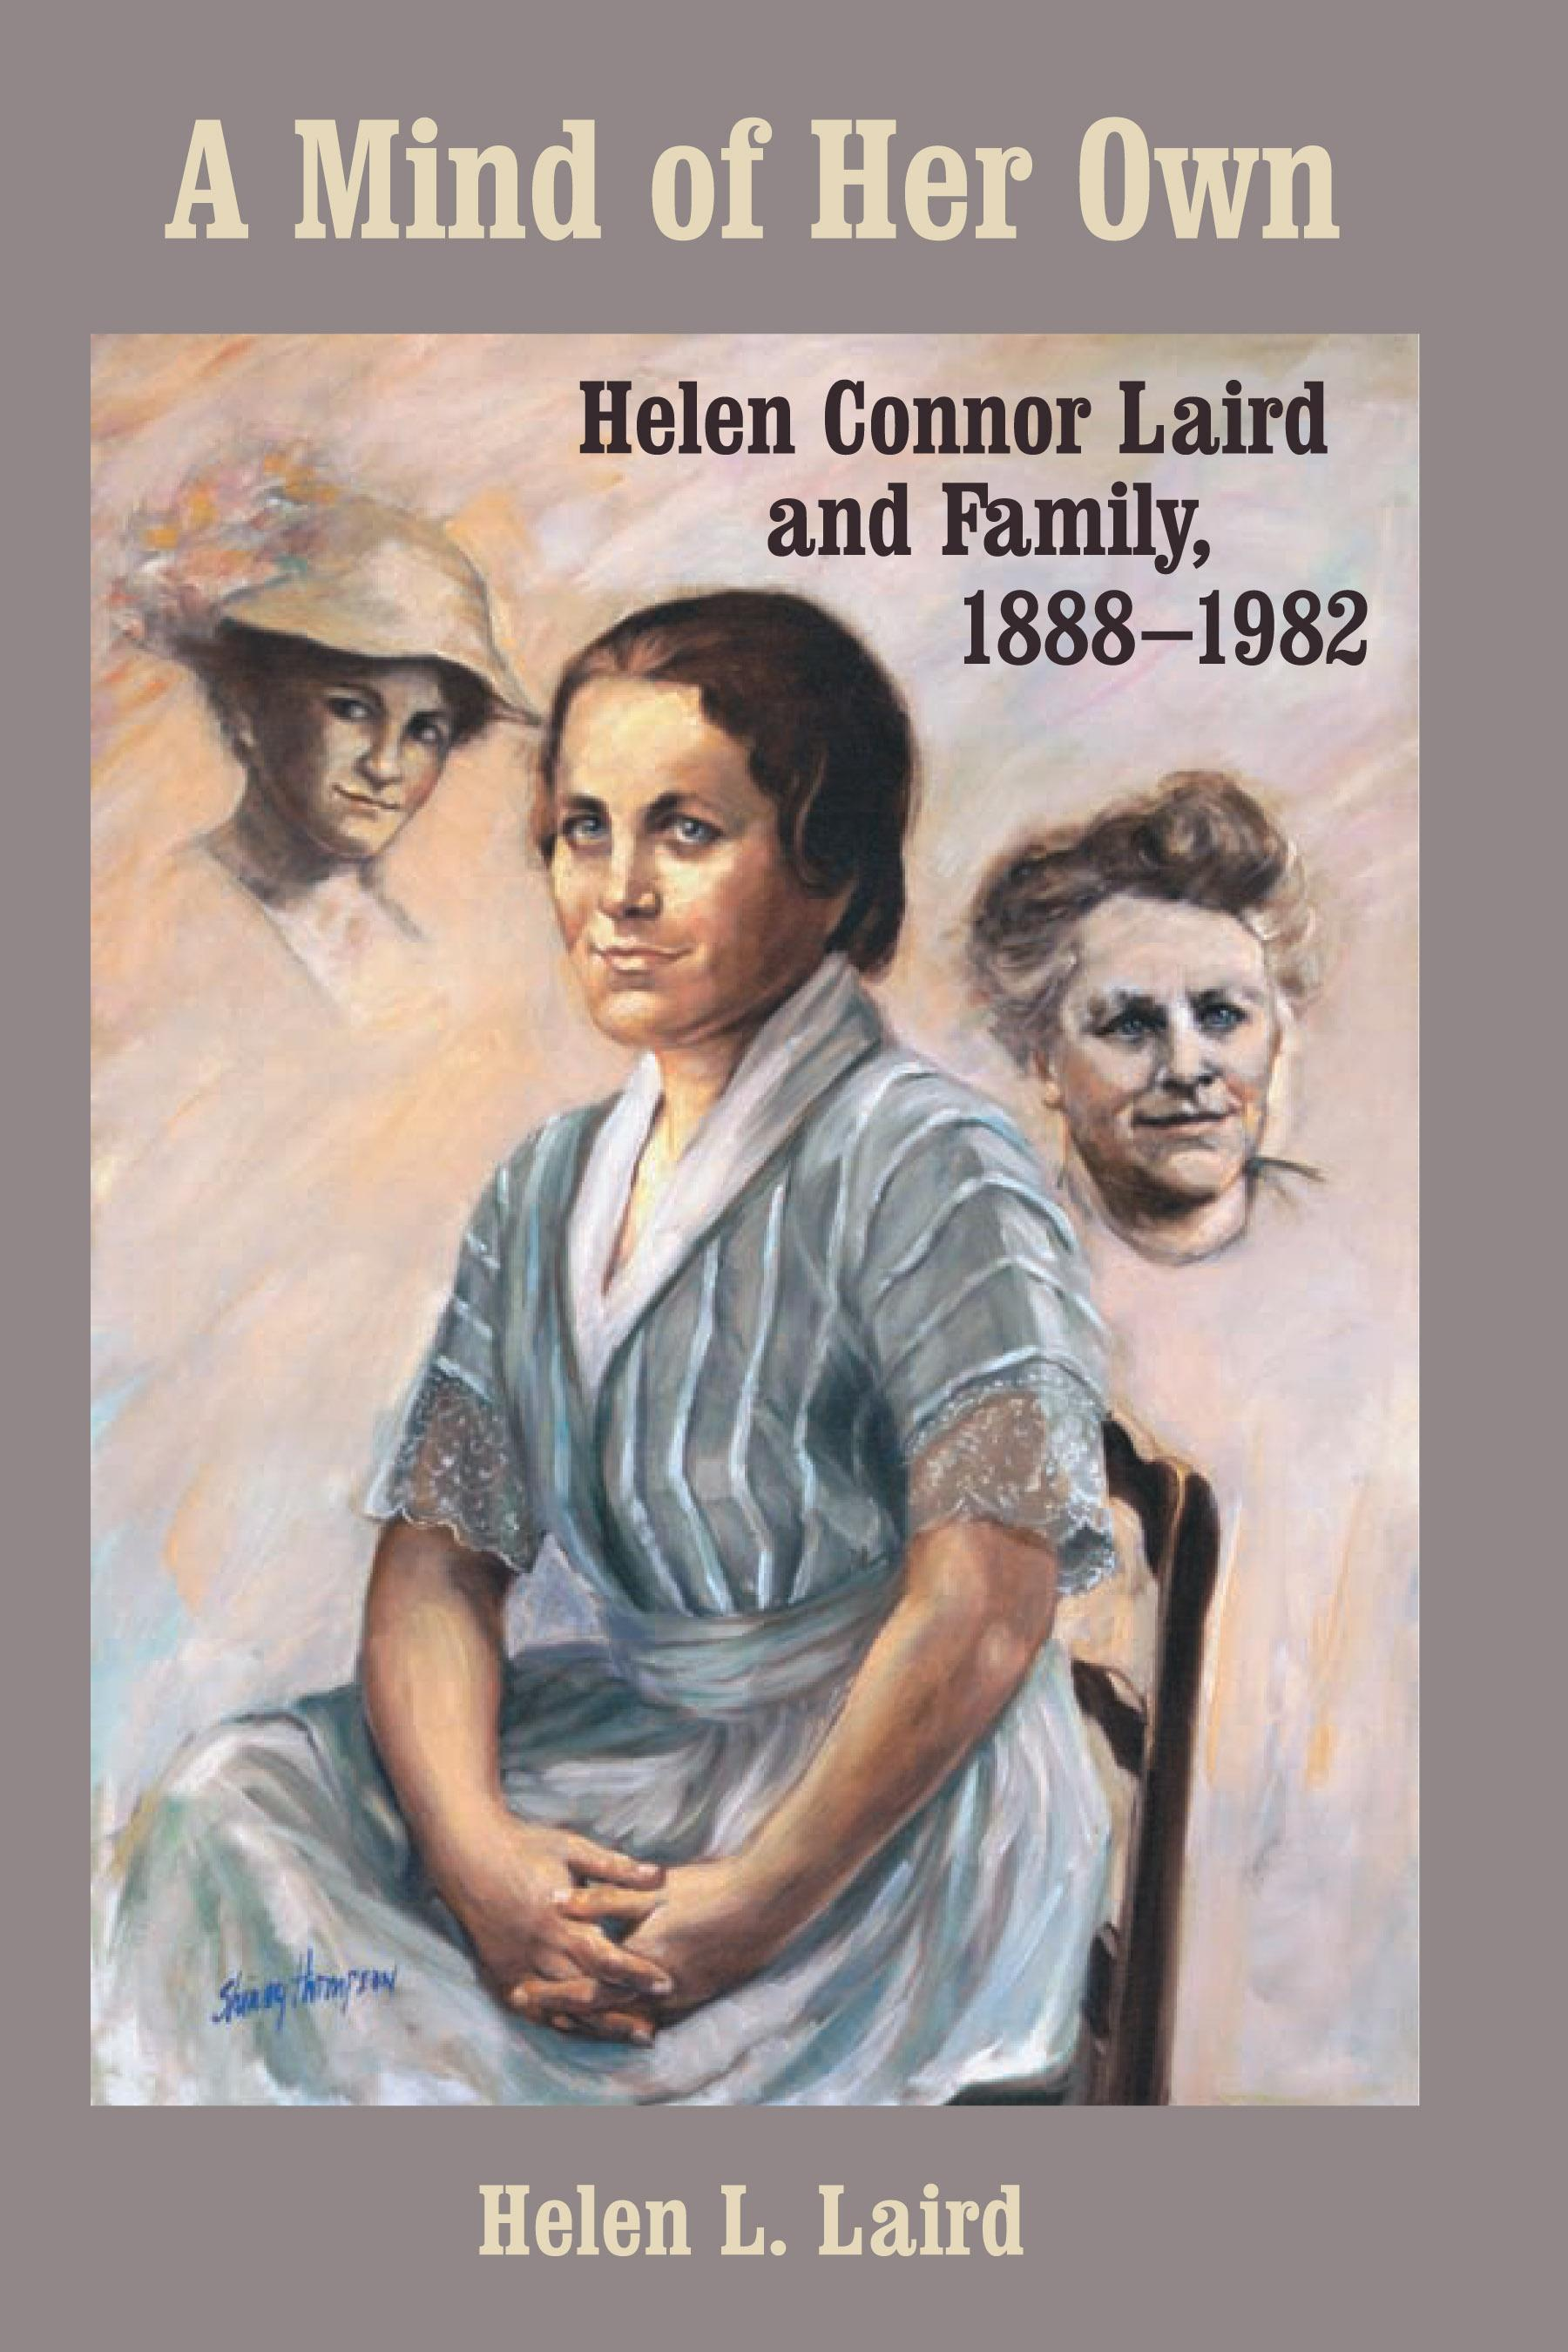 A Mind of Her Own: Helen Connor Laird and Family, 1888-1982 EB9780299214531